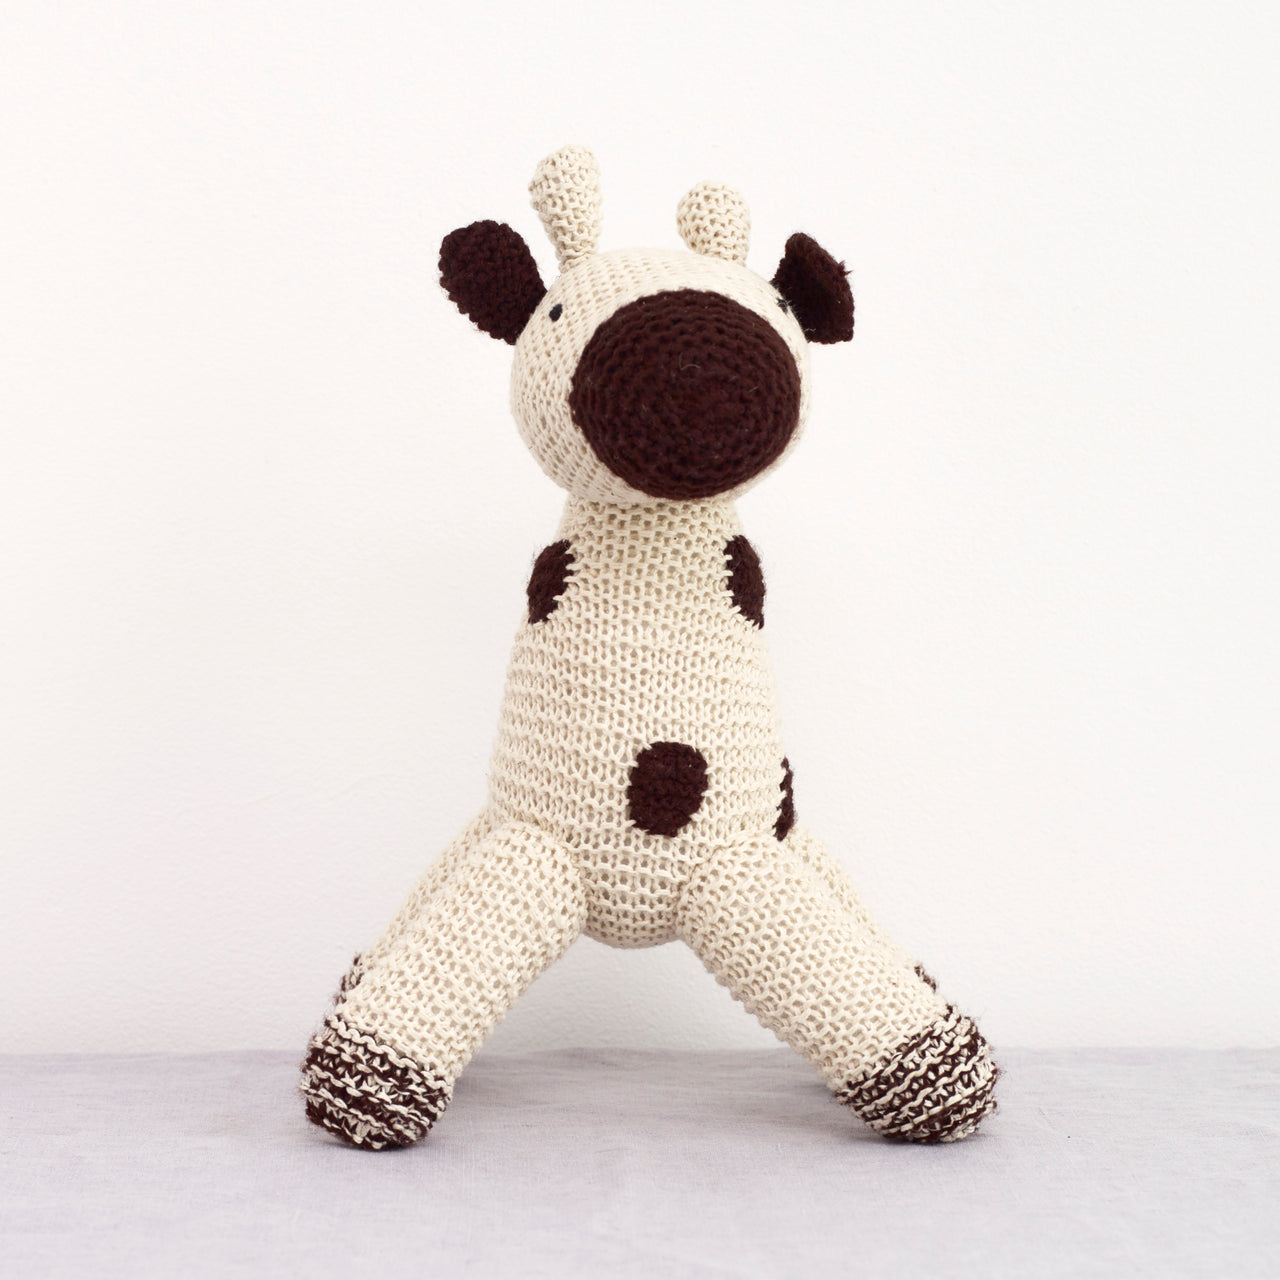 Hand Knitted Animal - Ursula Von Giraffe  - handmade - Zimbabwe - natural home - natural living - toy animals - knitted animals - baby and child - little ones - animal toys